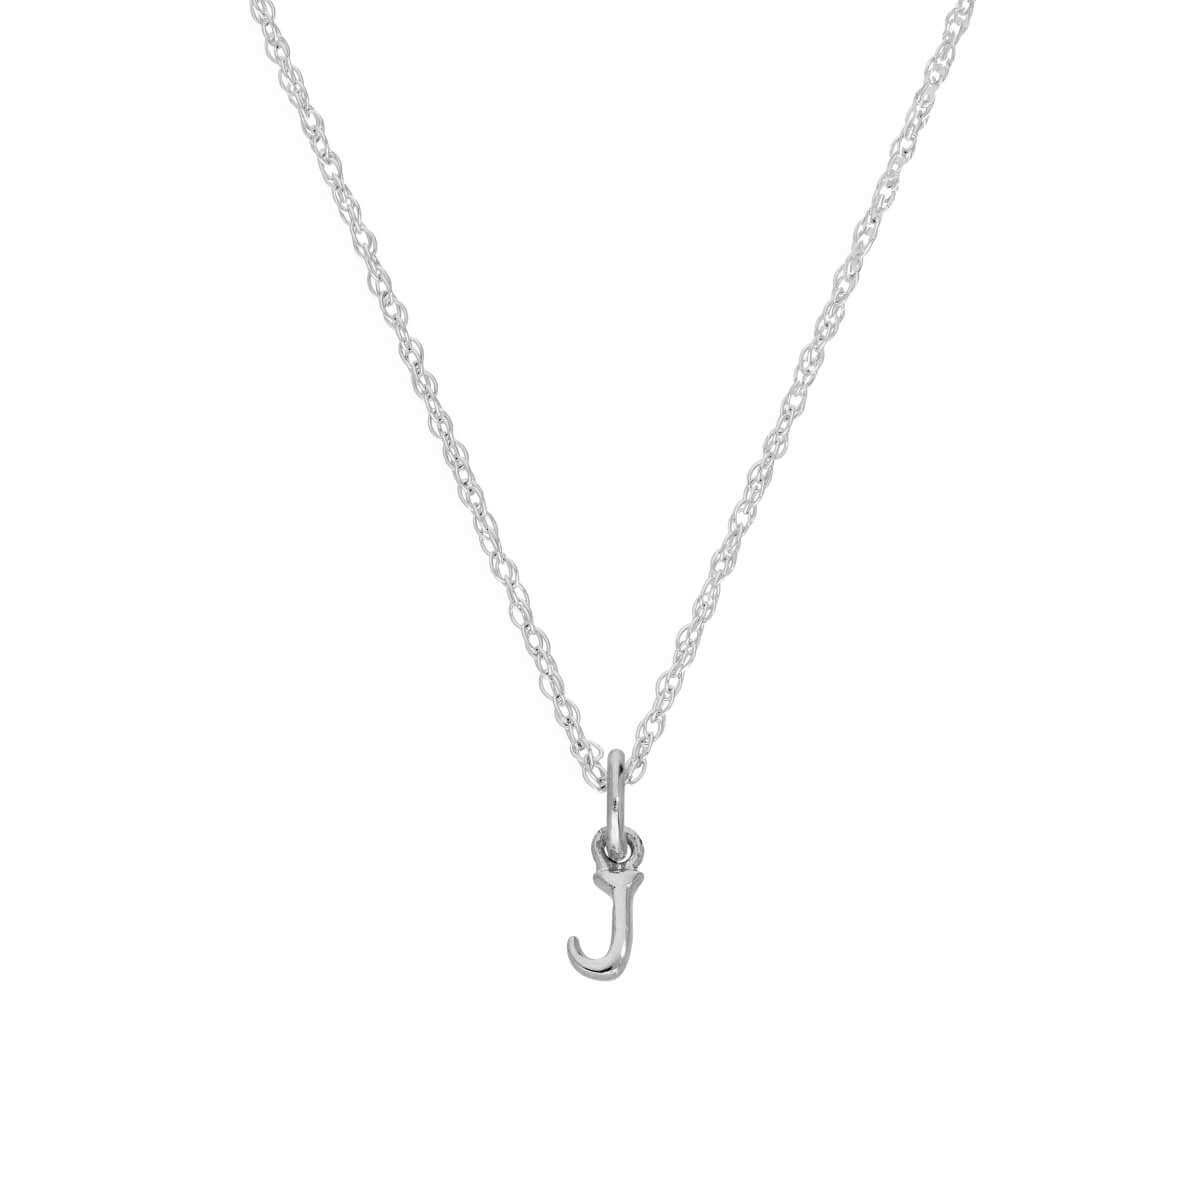 Tiny Sterling Silver Alphabet Letter J Pendant Necklace 14 - 22 Inches